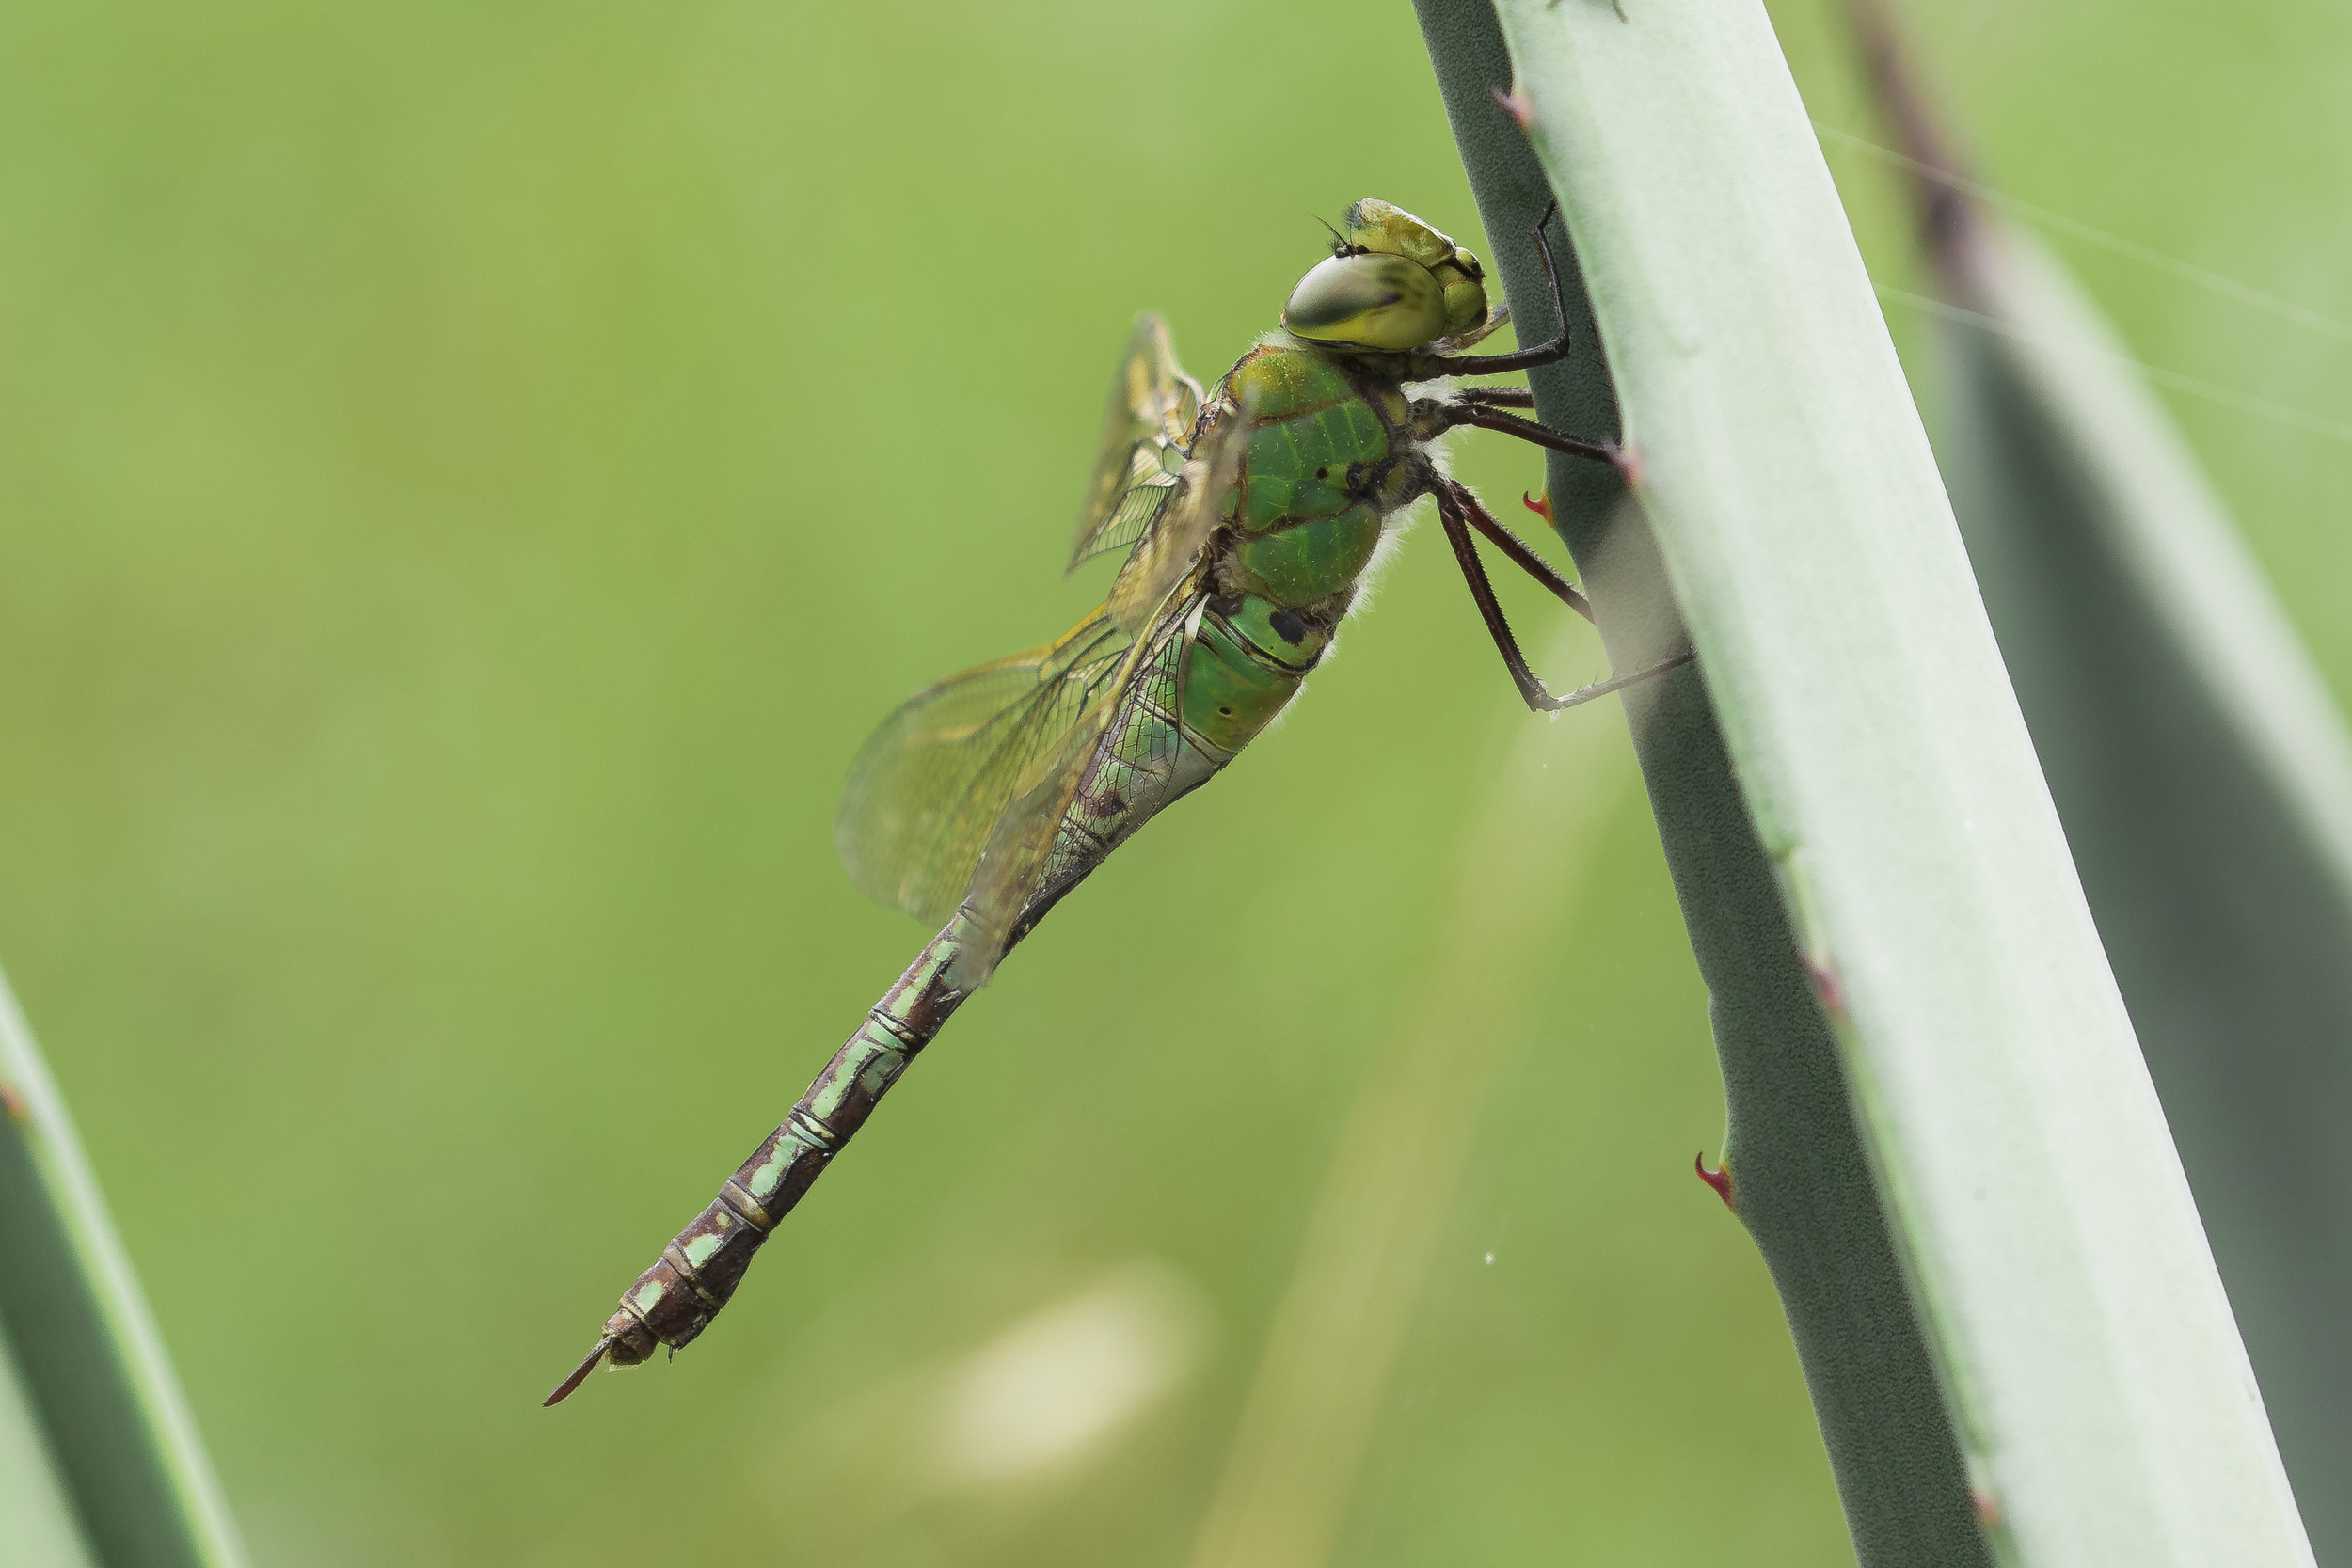 Female Emperor Dragonfly (I assume)